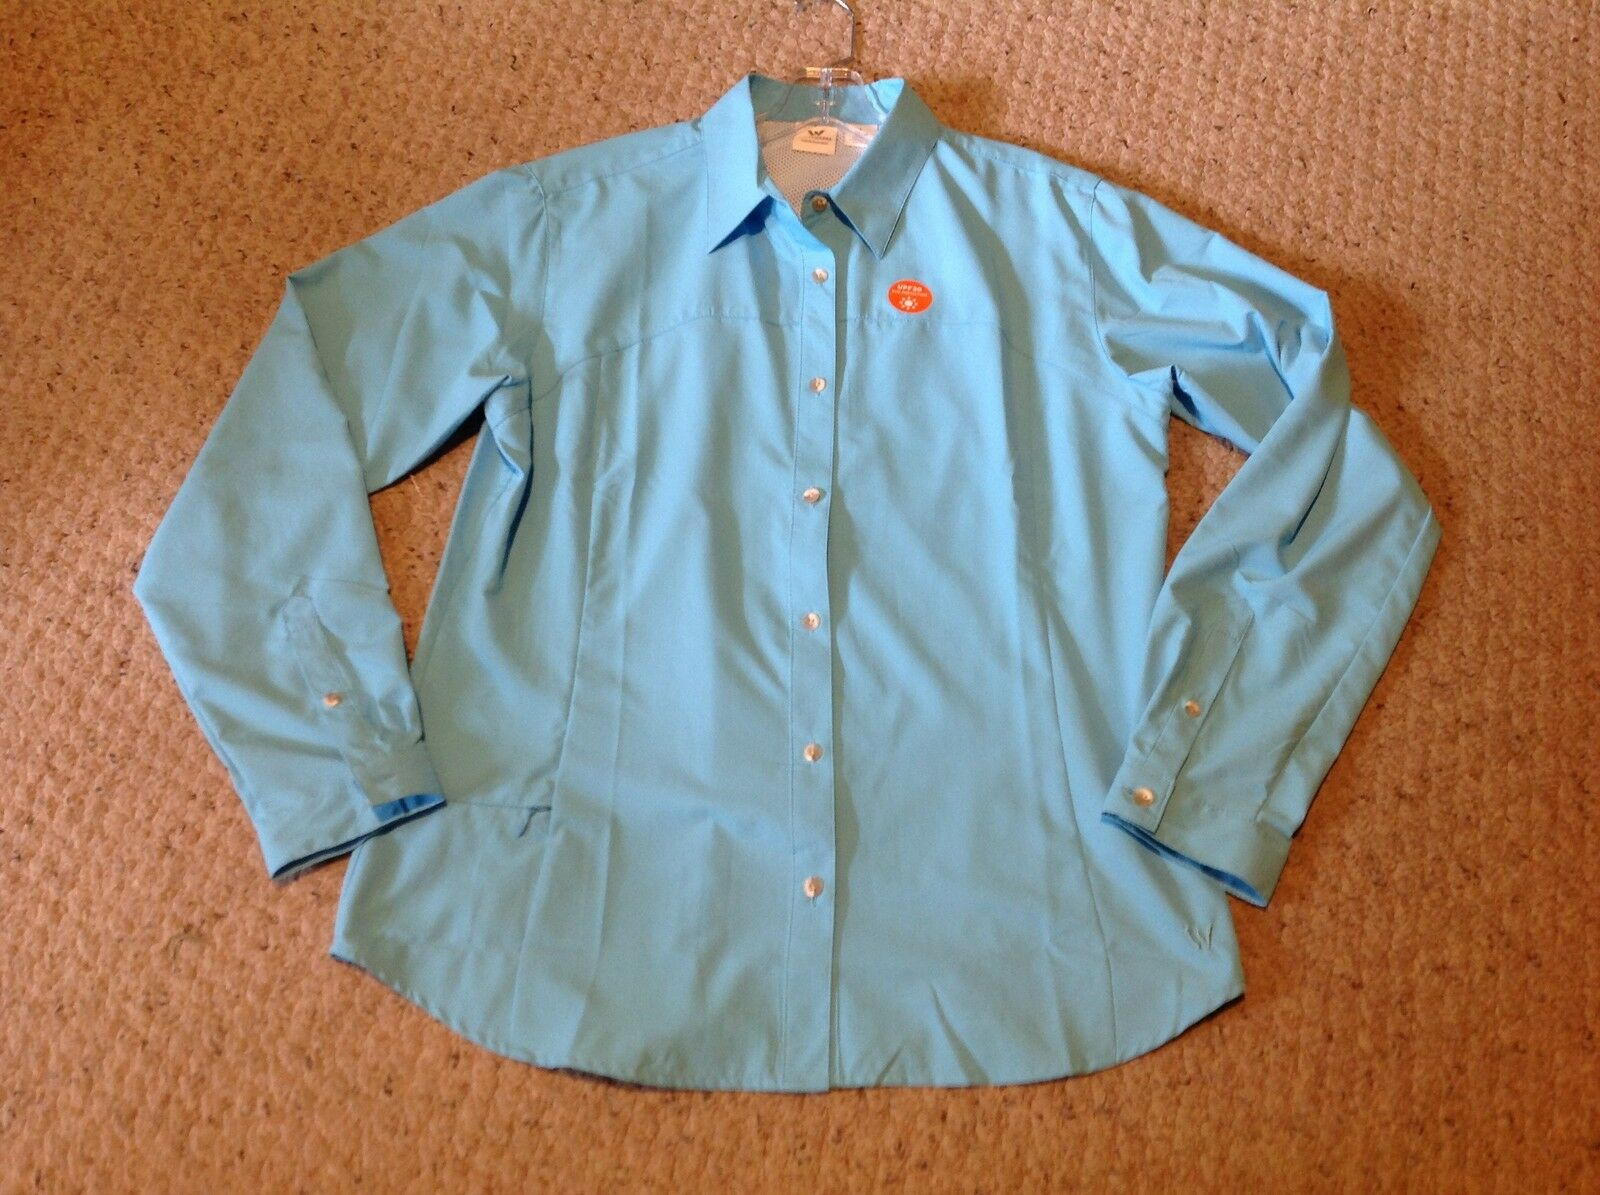 Women's size Small White Sierra Turquoise Fishing Shirt, long sleeves, UPF 30